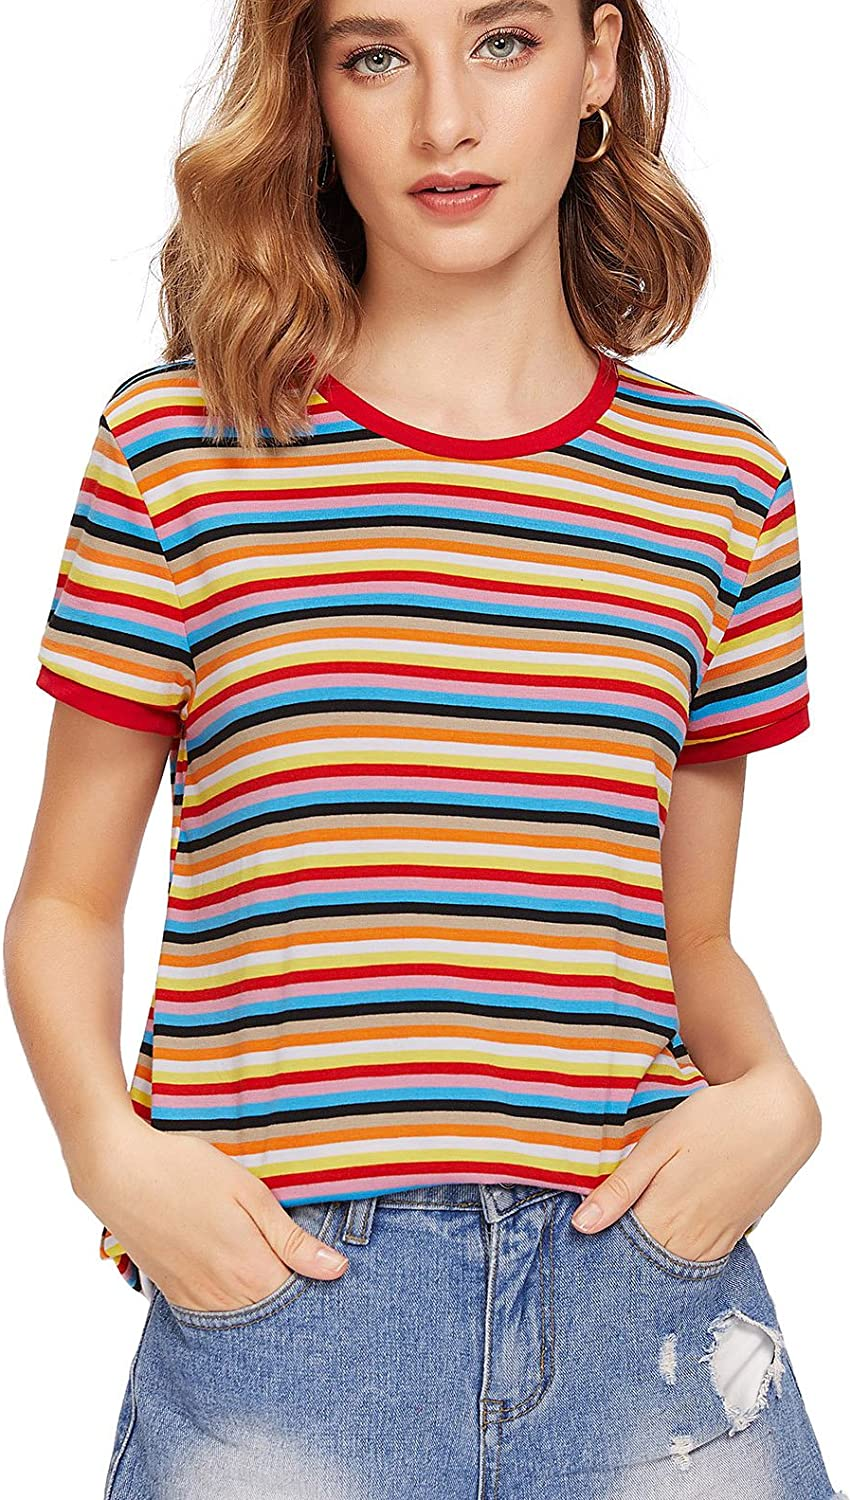 1970s Shirts, Tops, Blouses, T-Shirt Styles | History SheIn Womens Striped Ringer Round Neck Short Sleeve T-Shirt Casual Tops $14.99 AT vintagedancer.com